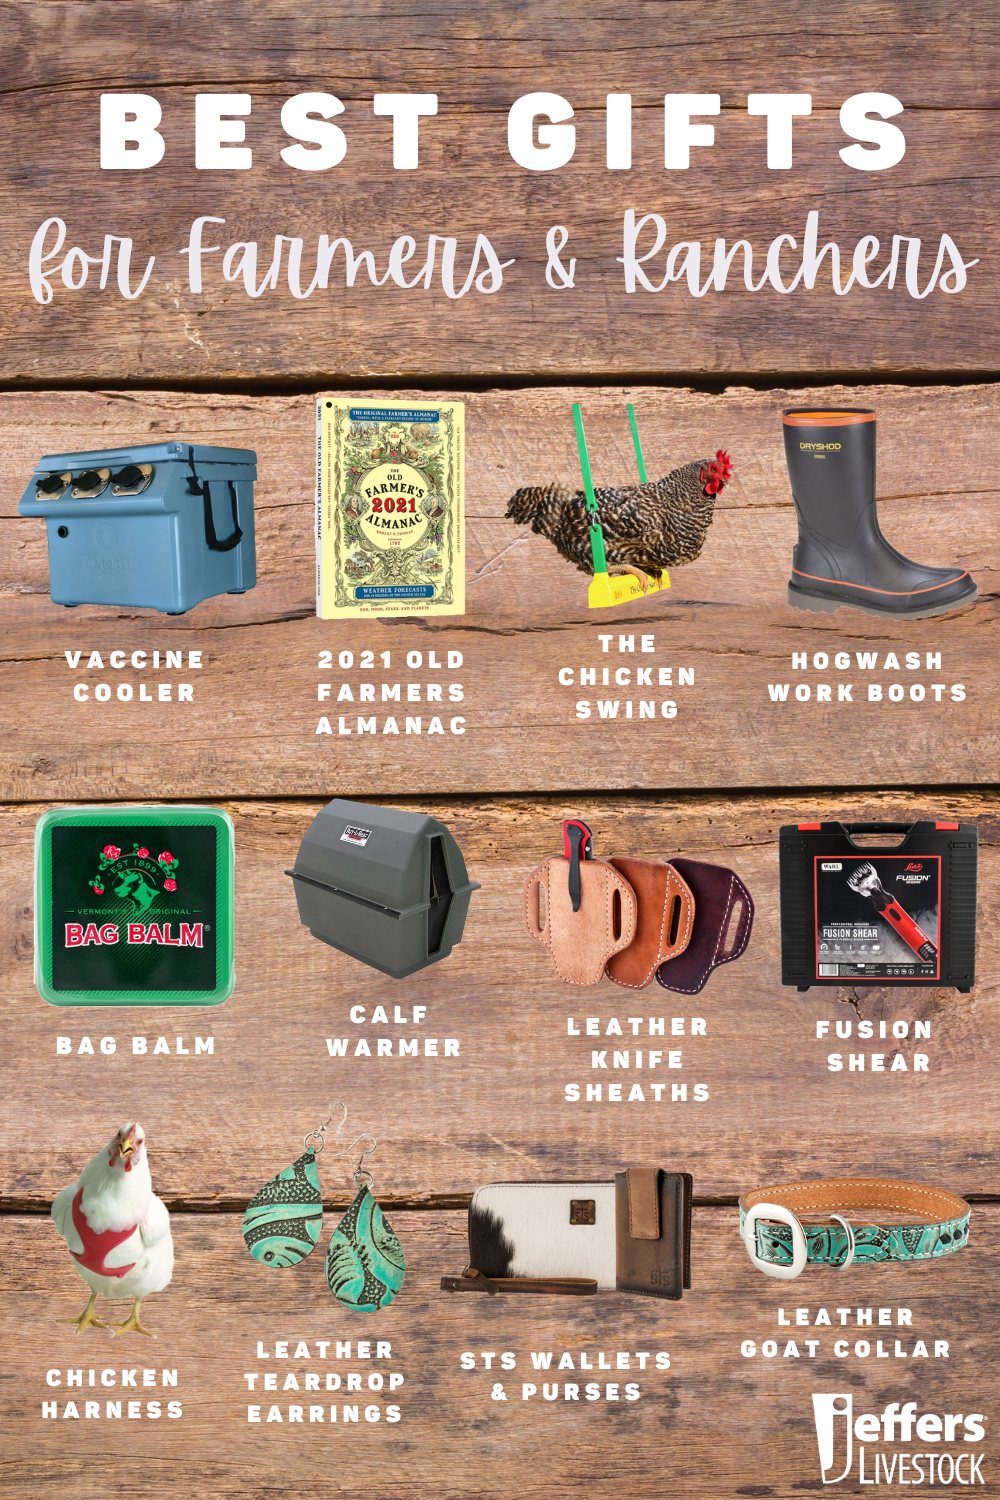 Jeffers Christmas 2021 Best Gifts For Farmers And Ranchers In 2020 Jeffers Blogs Gifts For Farmers Best Gifts Gifts